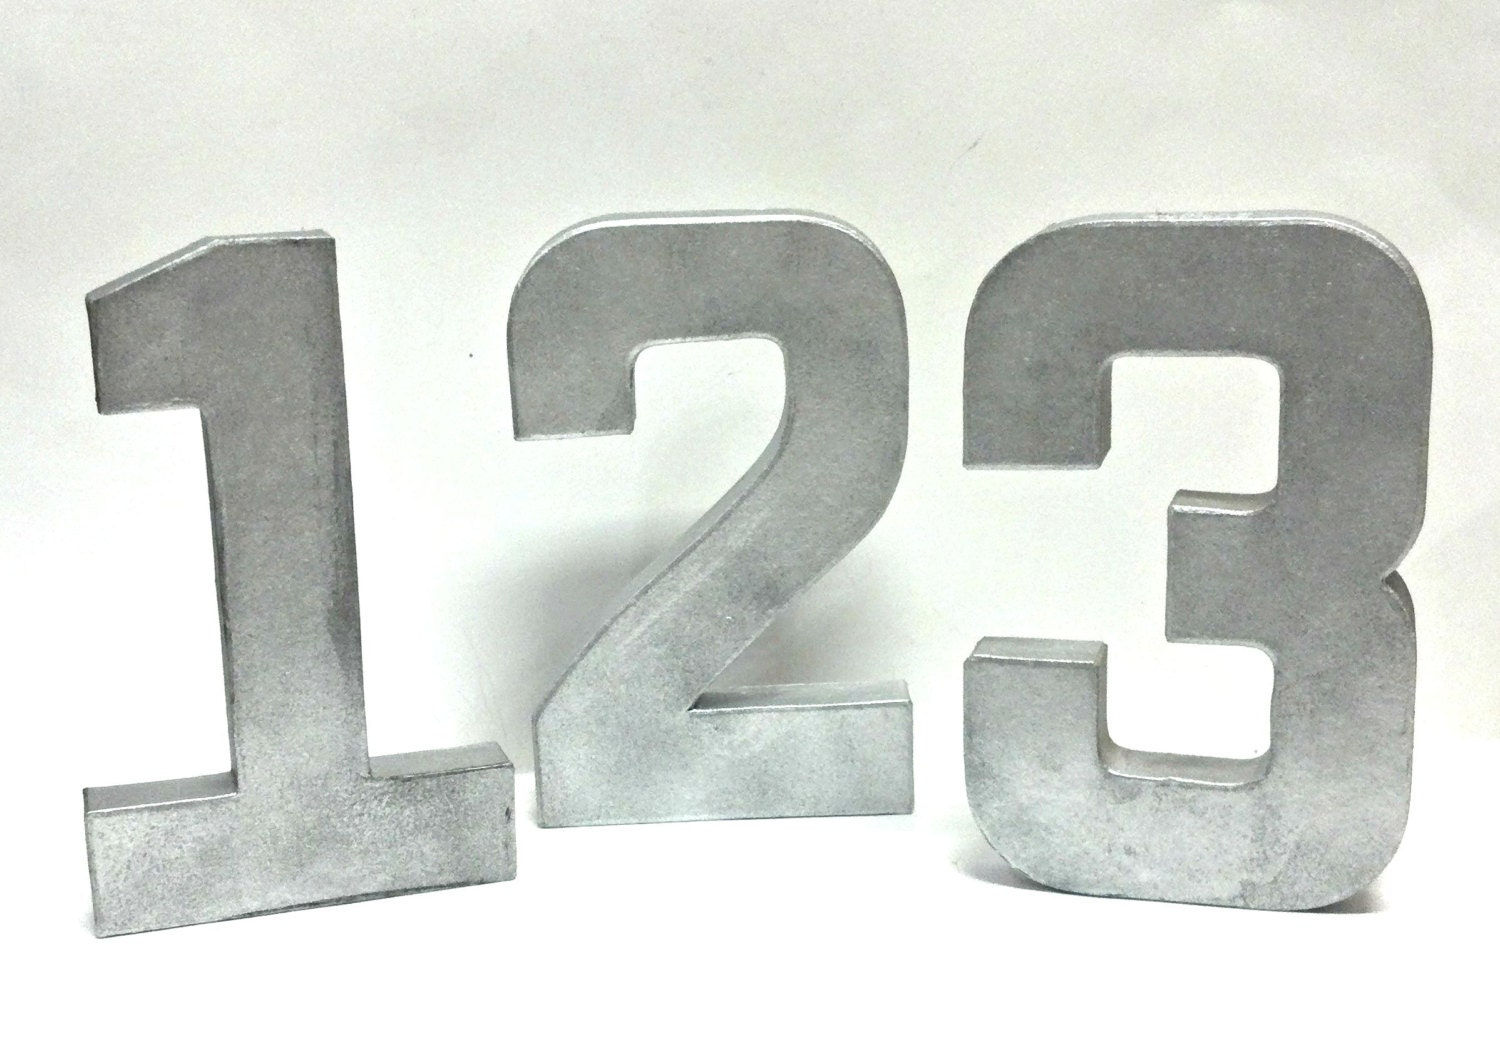 Tin Letters And Numbers Rustic Metal Table Numbers Faux Galvanized Metal Set Of 5